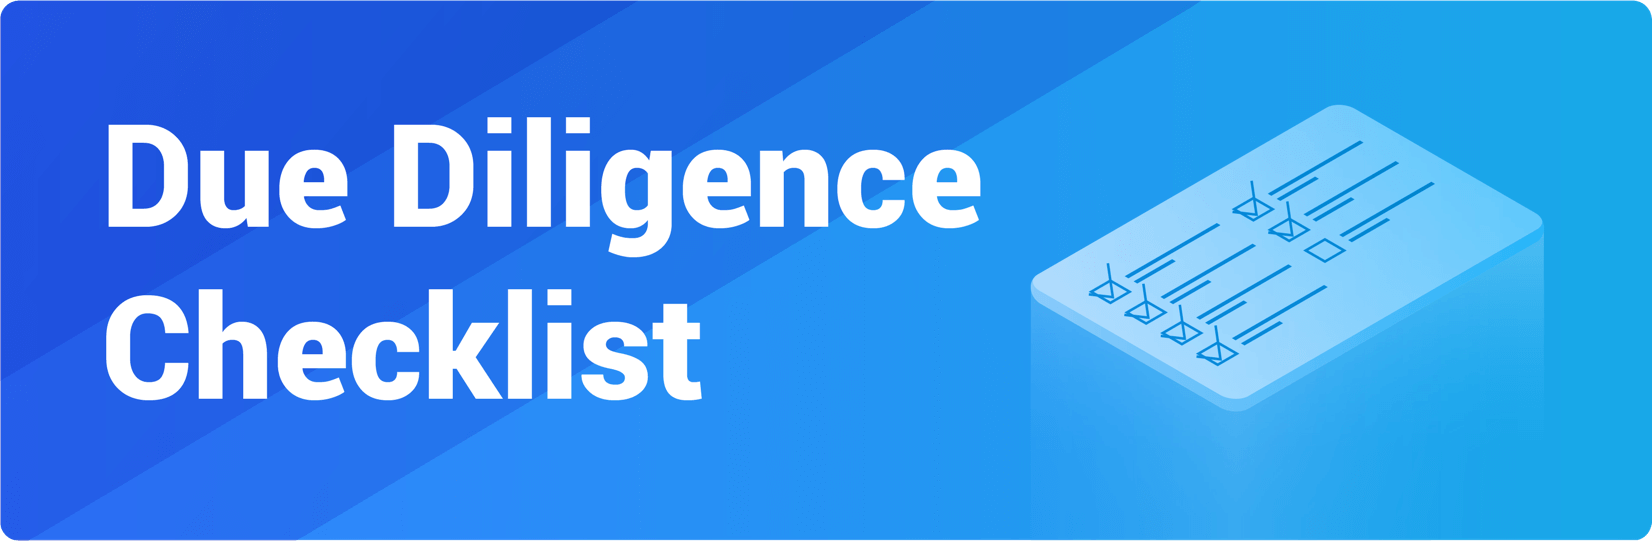 Due Diligence Checklist for M&A in 2019